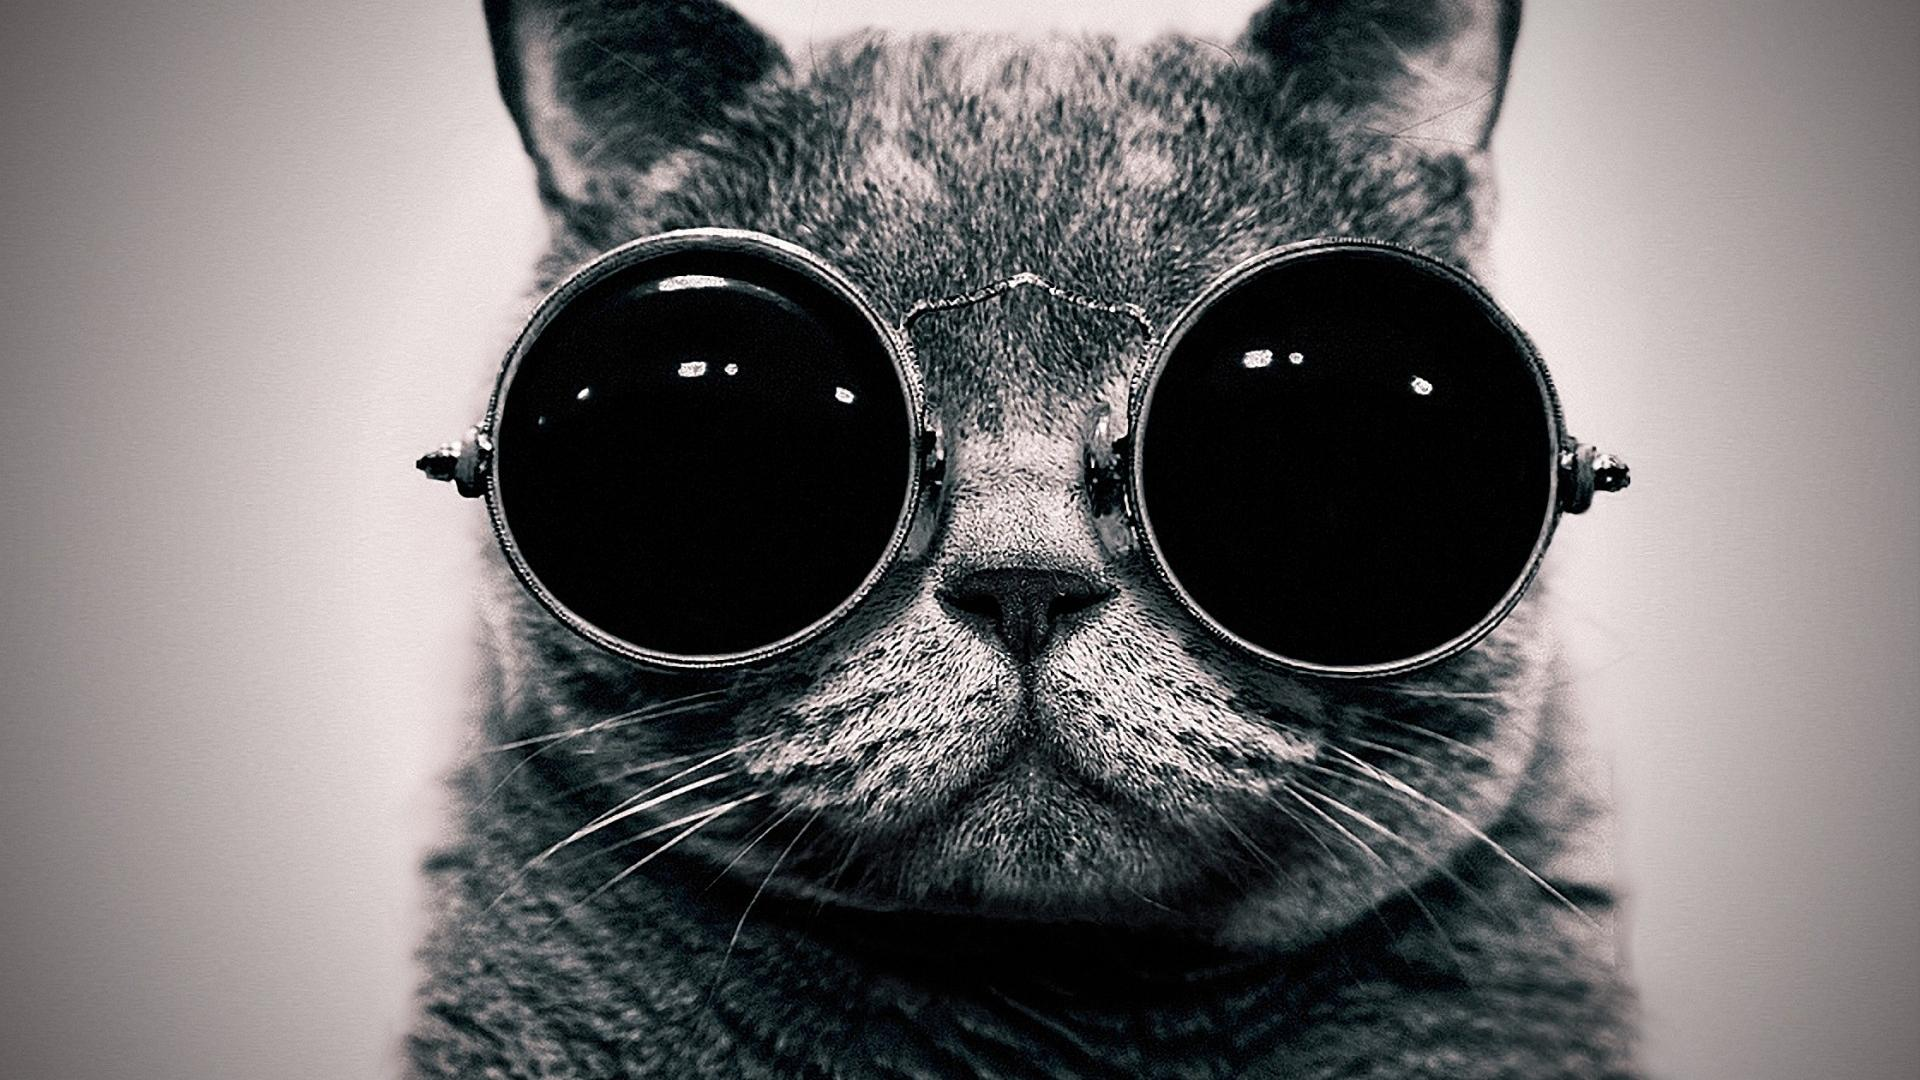 Cat steampunk wallpaper glasses funny wallpapers 19201080 1920x1080